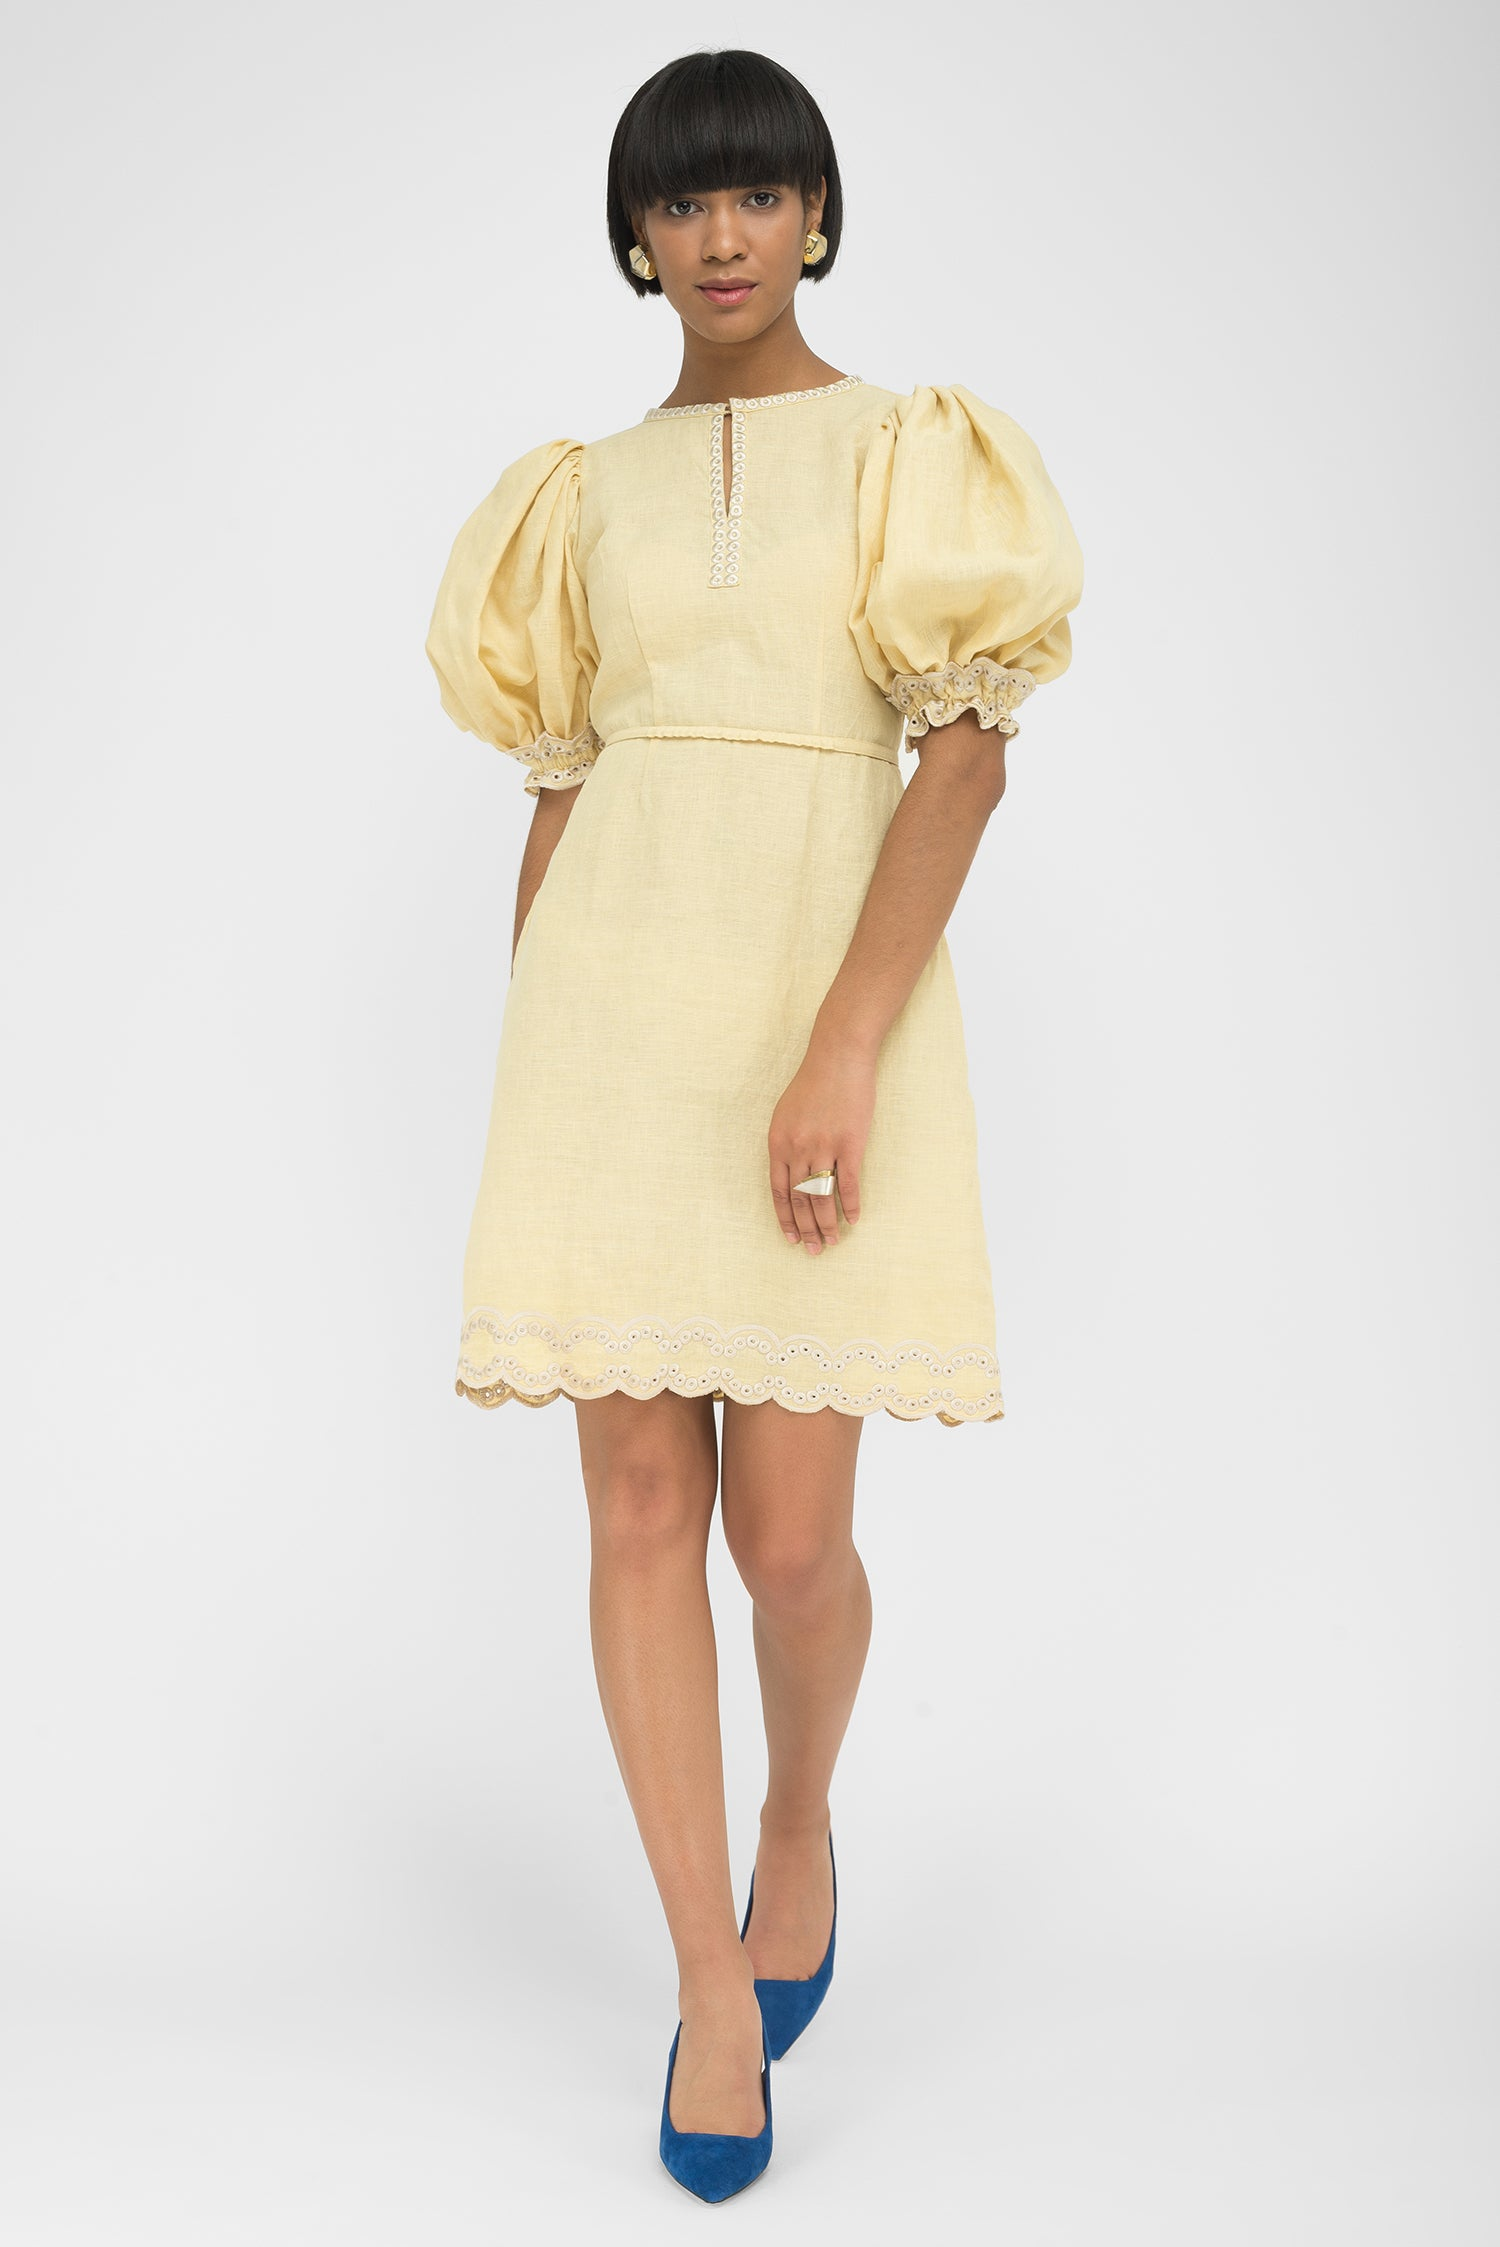 FANM MON LETON Light Yellow Linen Balloon Sleeve Embroidered Mini Dress